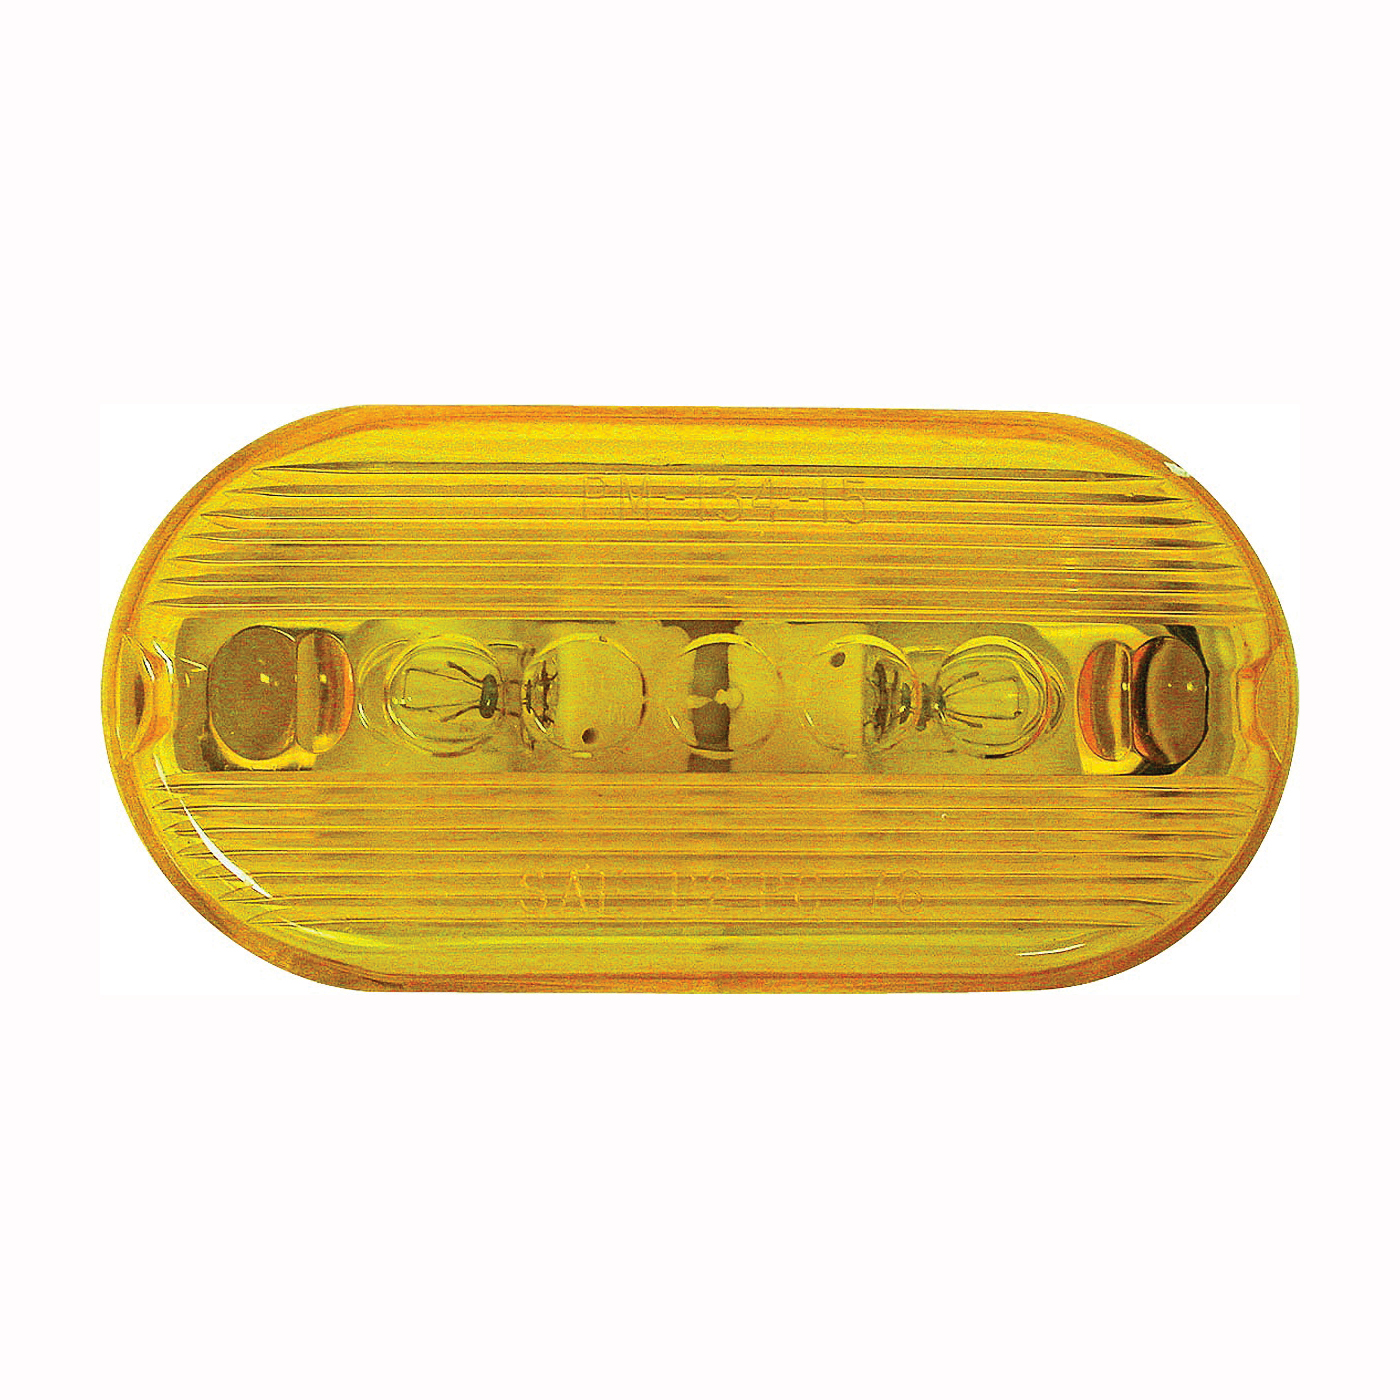 Picture of PM V135A Marker Light, 2 -Lamp, Incandescent Lamp, Amber Lamp